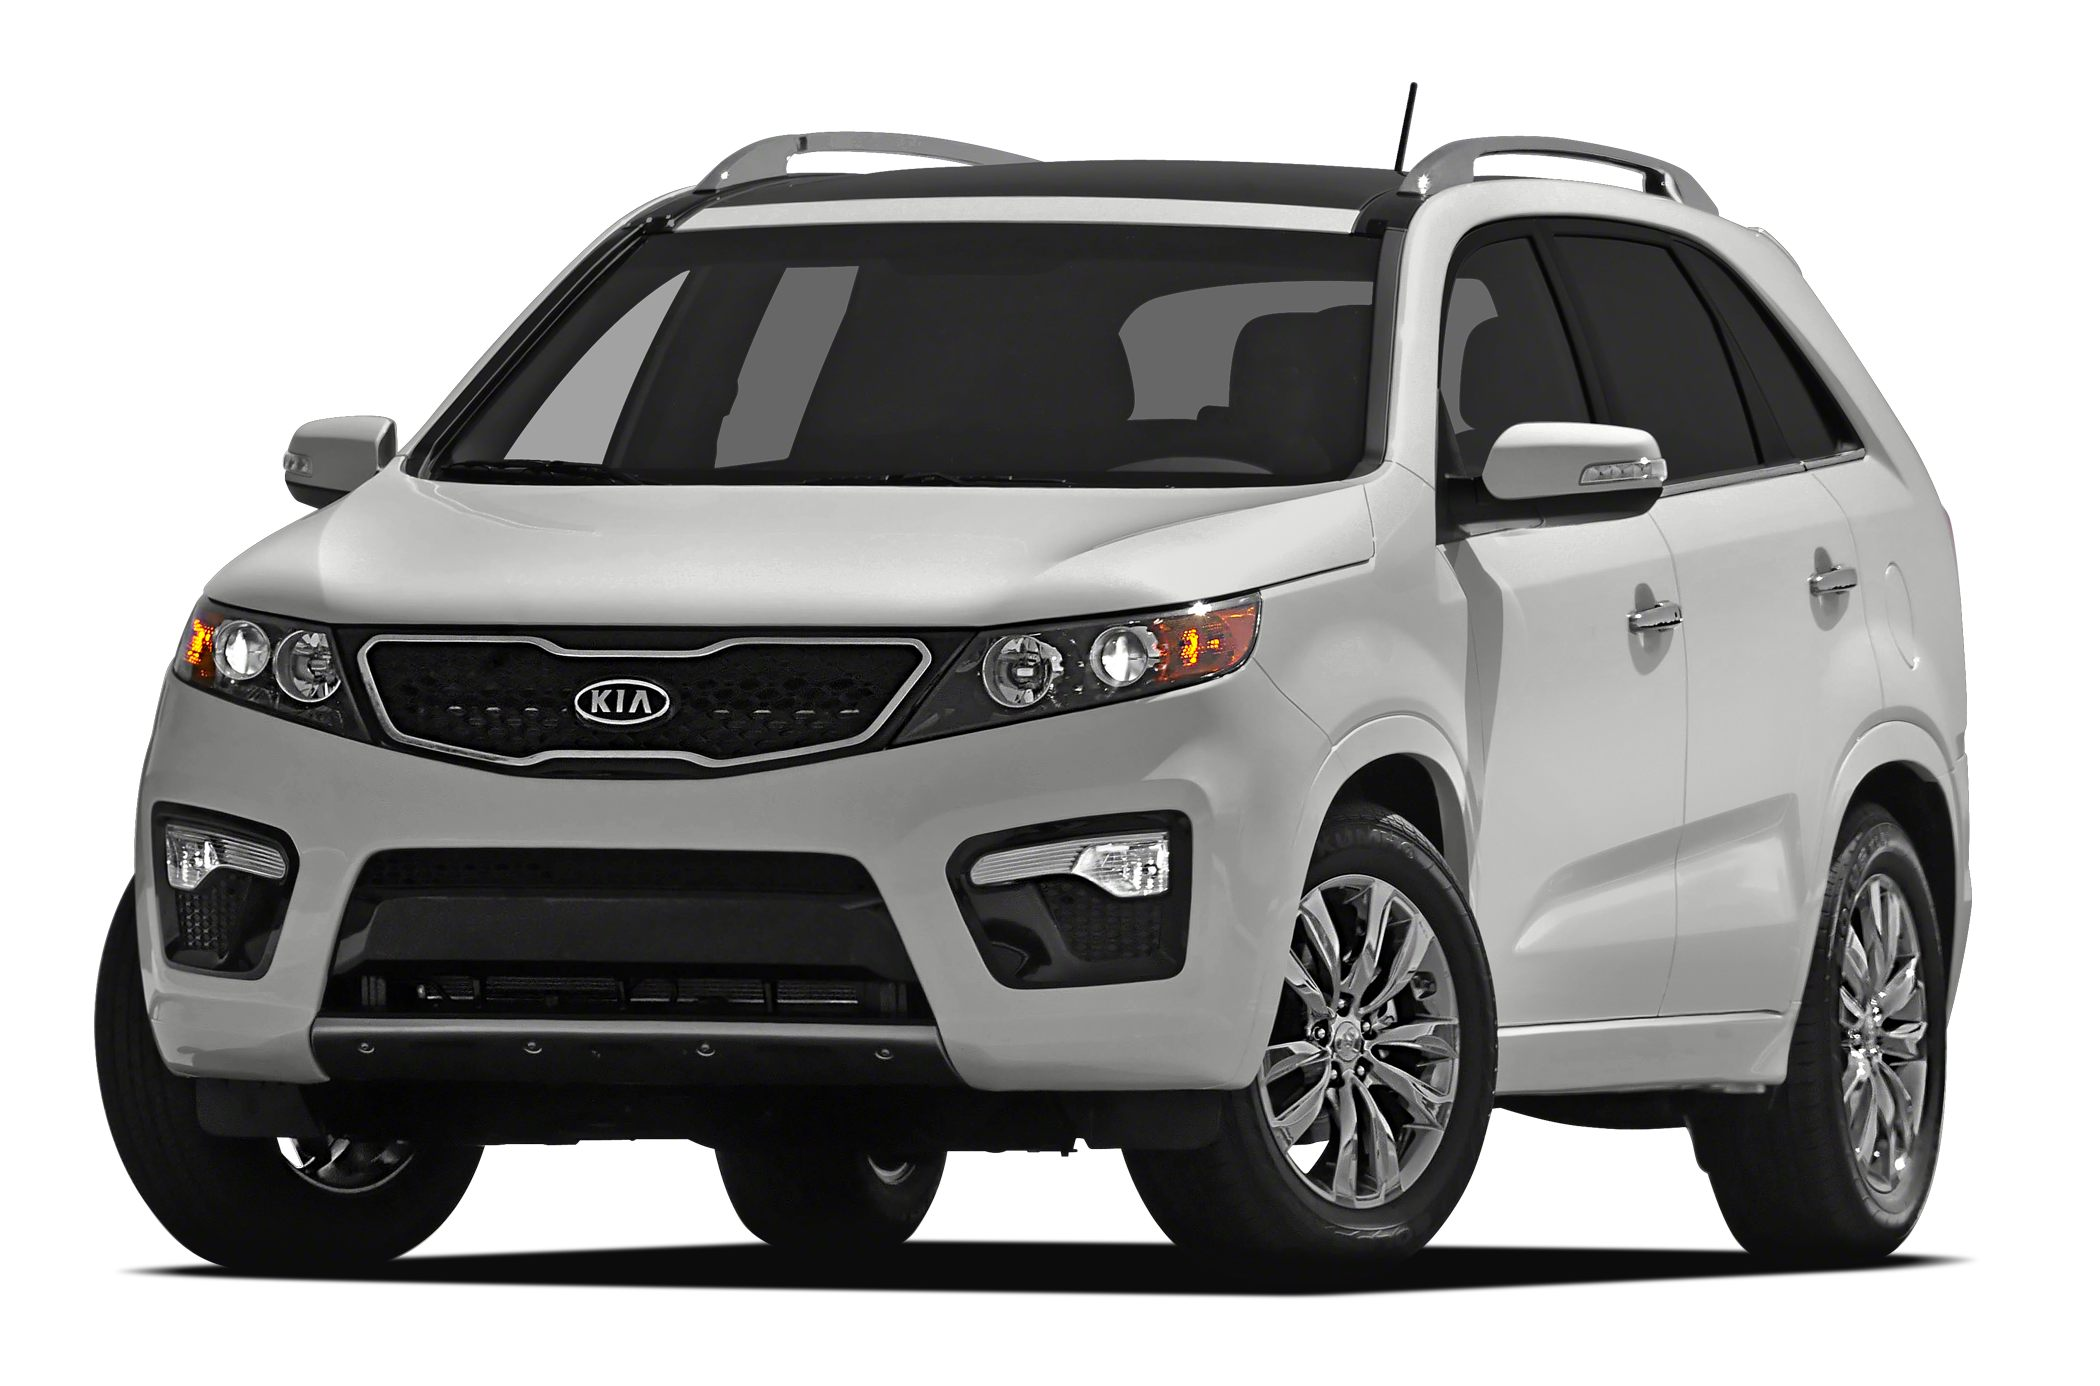 2012 Kia Sorento SX SUV for sale in Clearwater for $22,481 with 52,492 miles